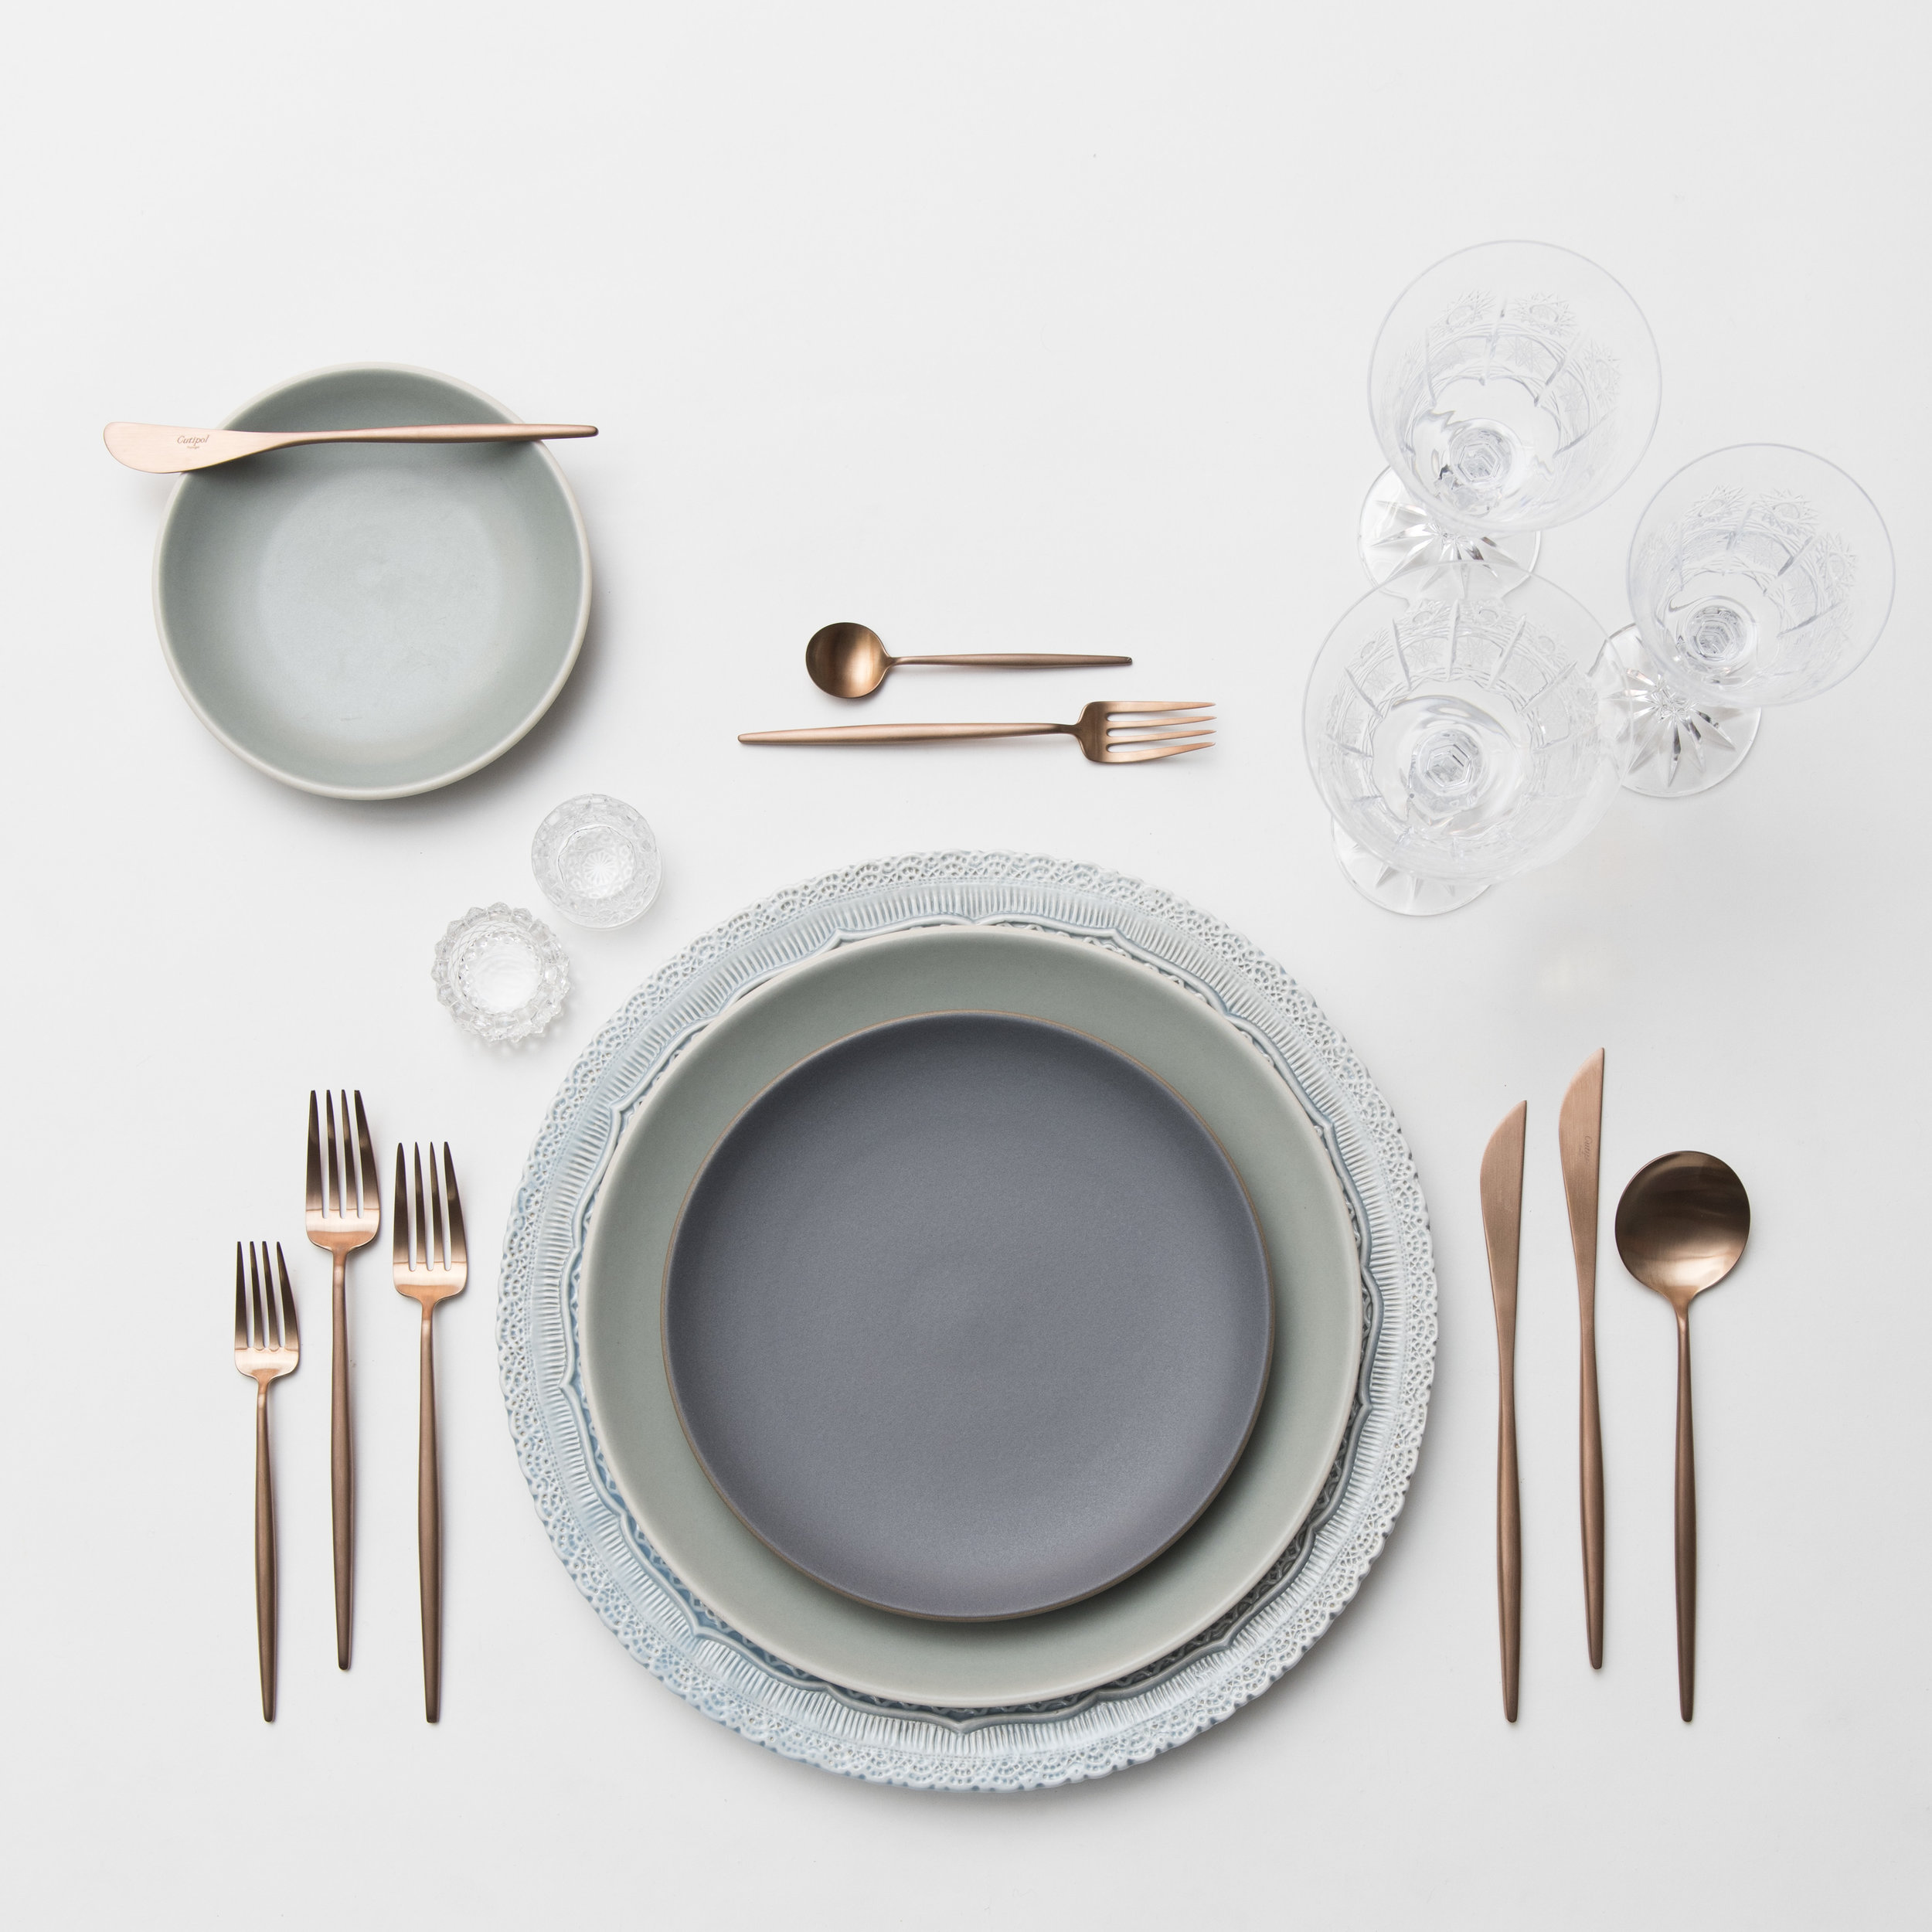 RENT: Lace Chargers in Dusty Blue + Heath Ceramics in Indigo/Slate/Mist + Moon Flatware in Brushed Rose Gold + Czech Crystal Stemware + Antique Crystal Salt Cellars  SHOP:Moon Flatware in Brushed Rose Gold